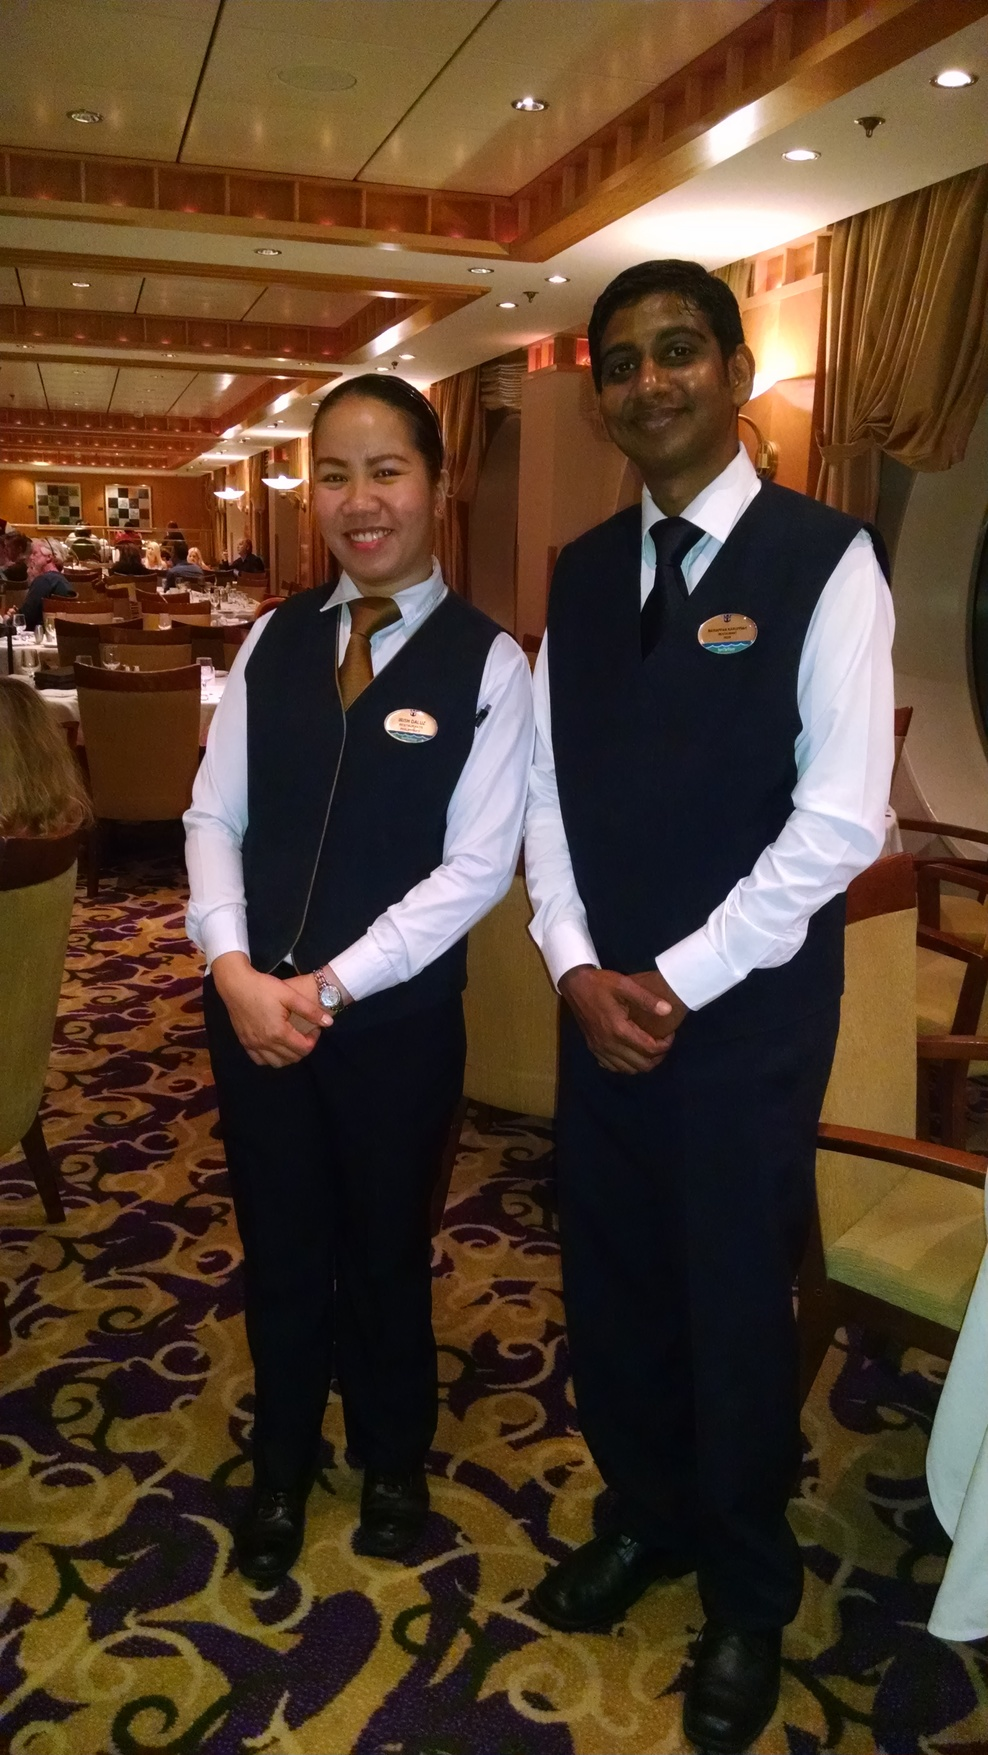 Awesome wait staff. 